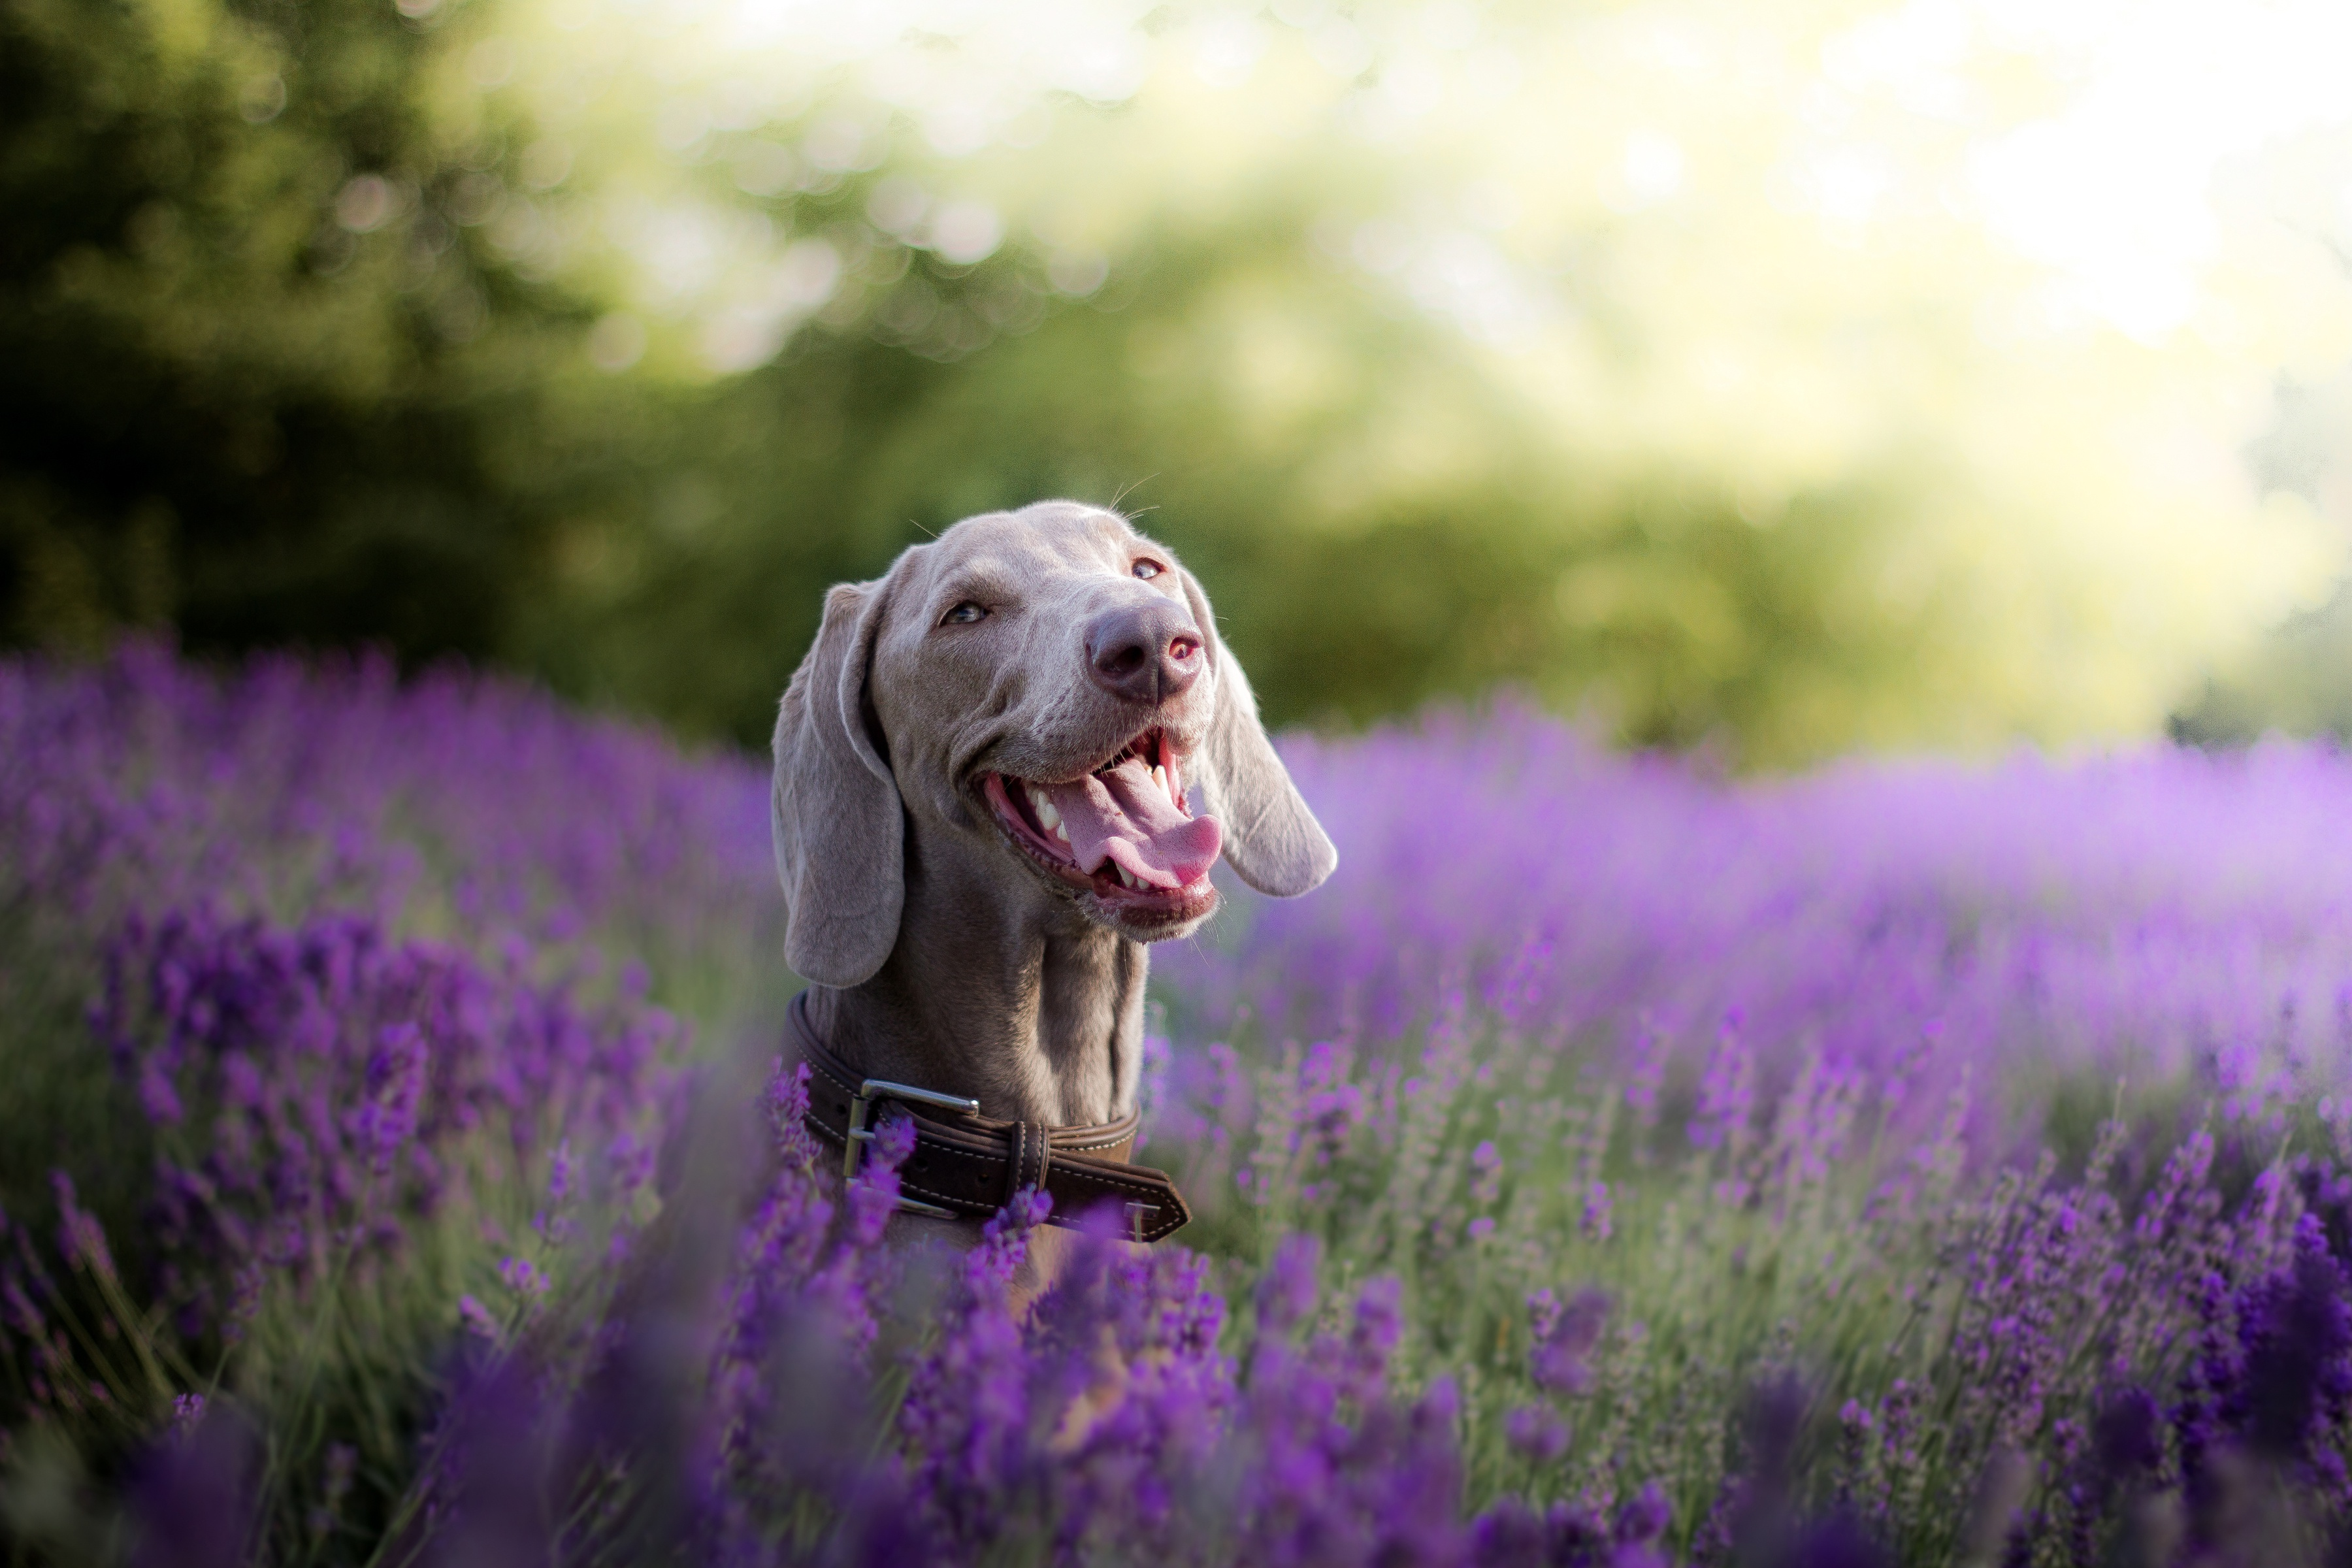 Wallpaper Weimaraner dog with tongue sticking out in flowers